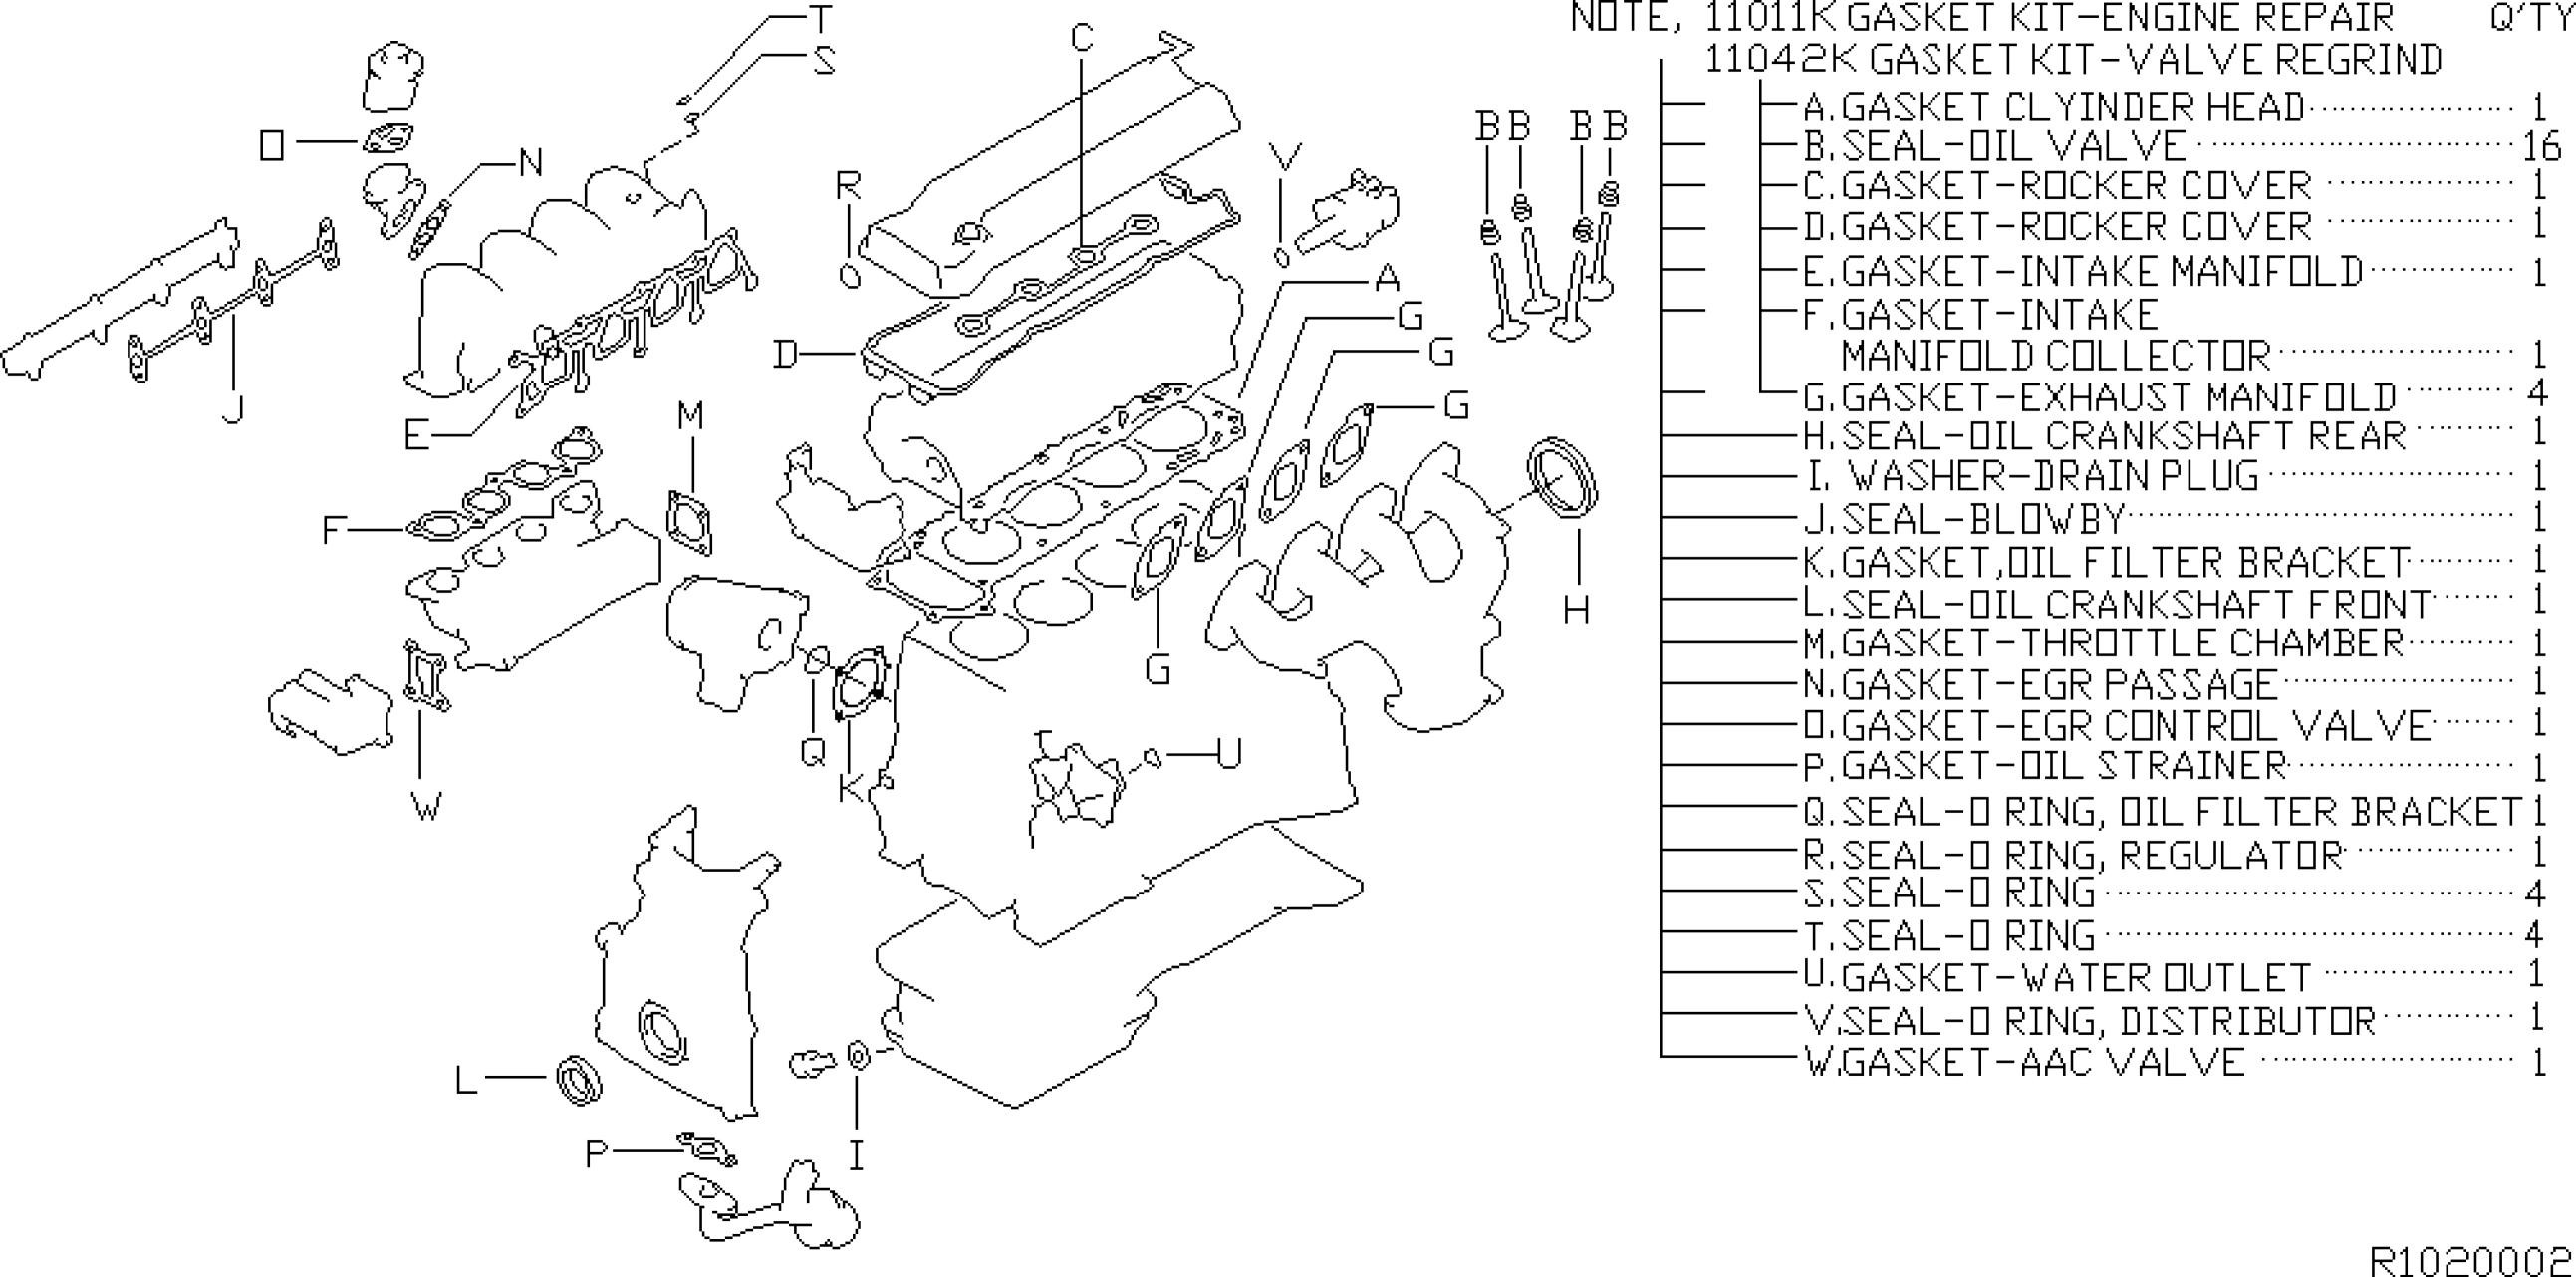 2000 altima serpentine belt diagram